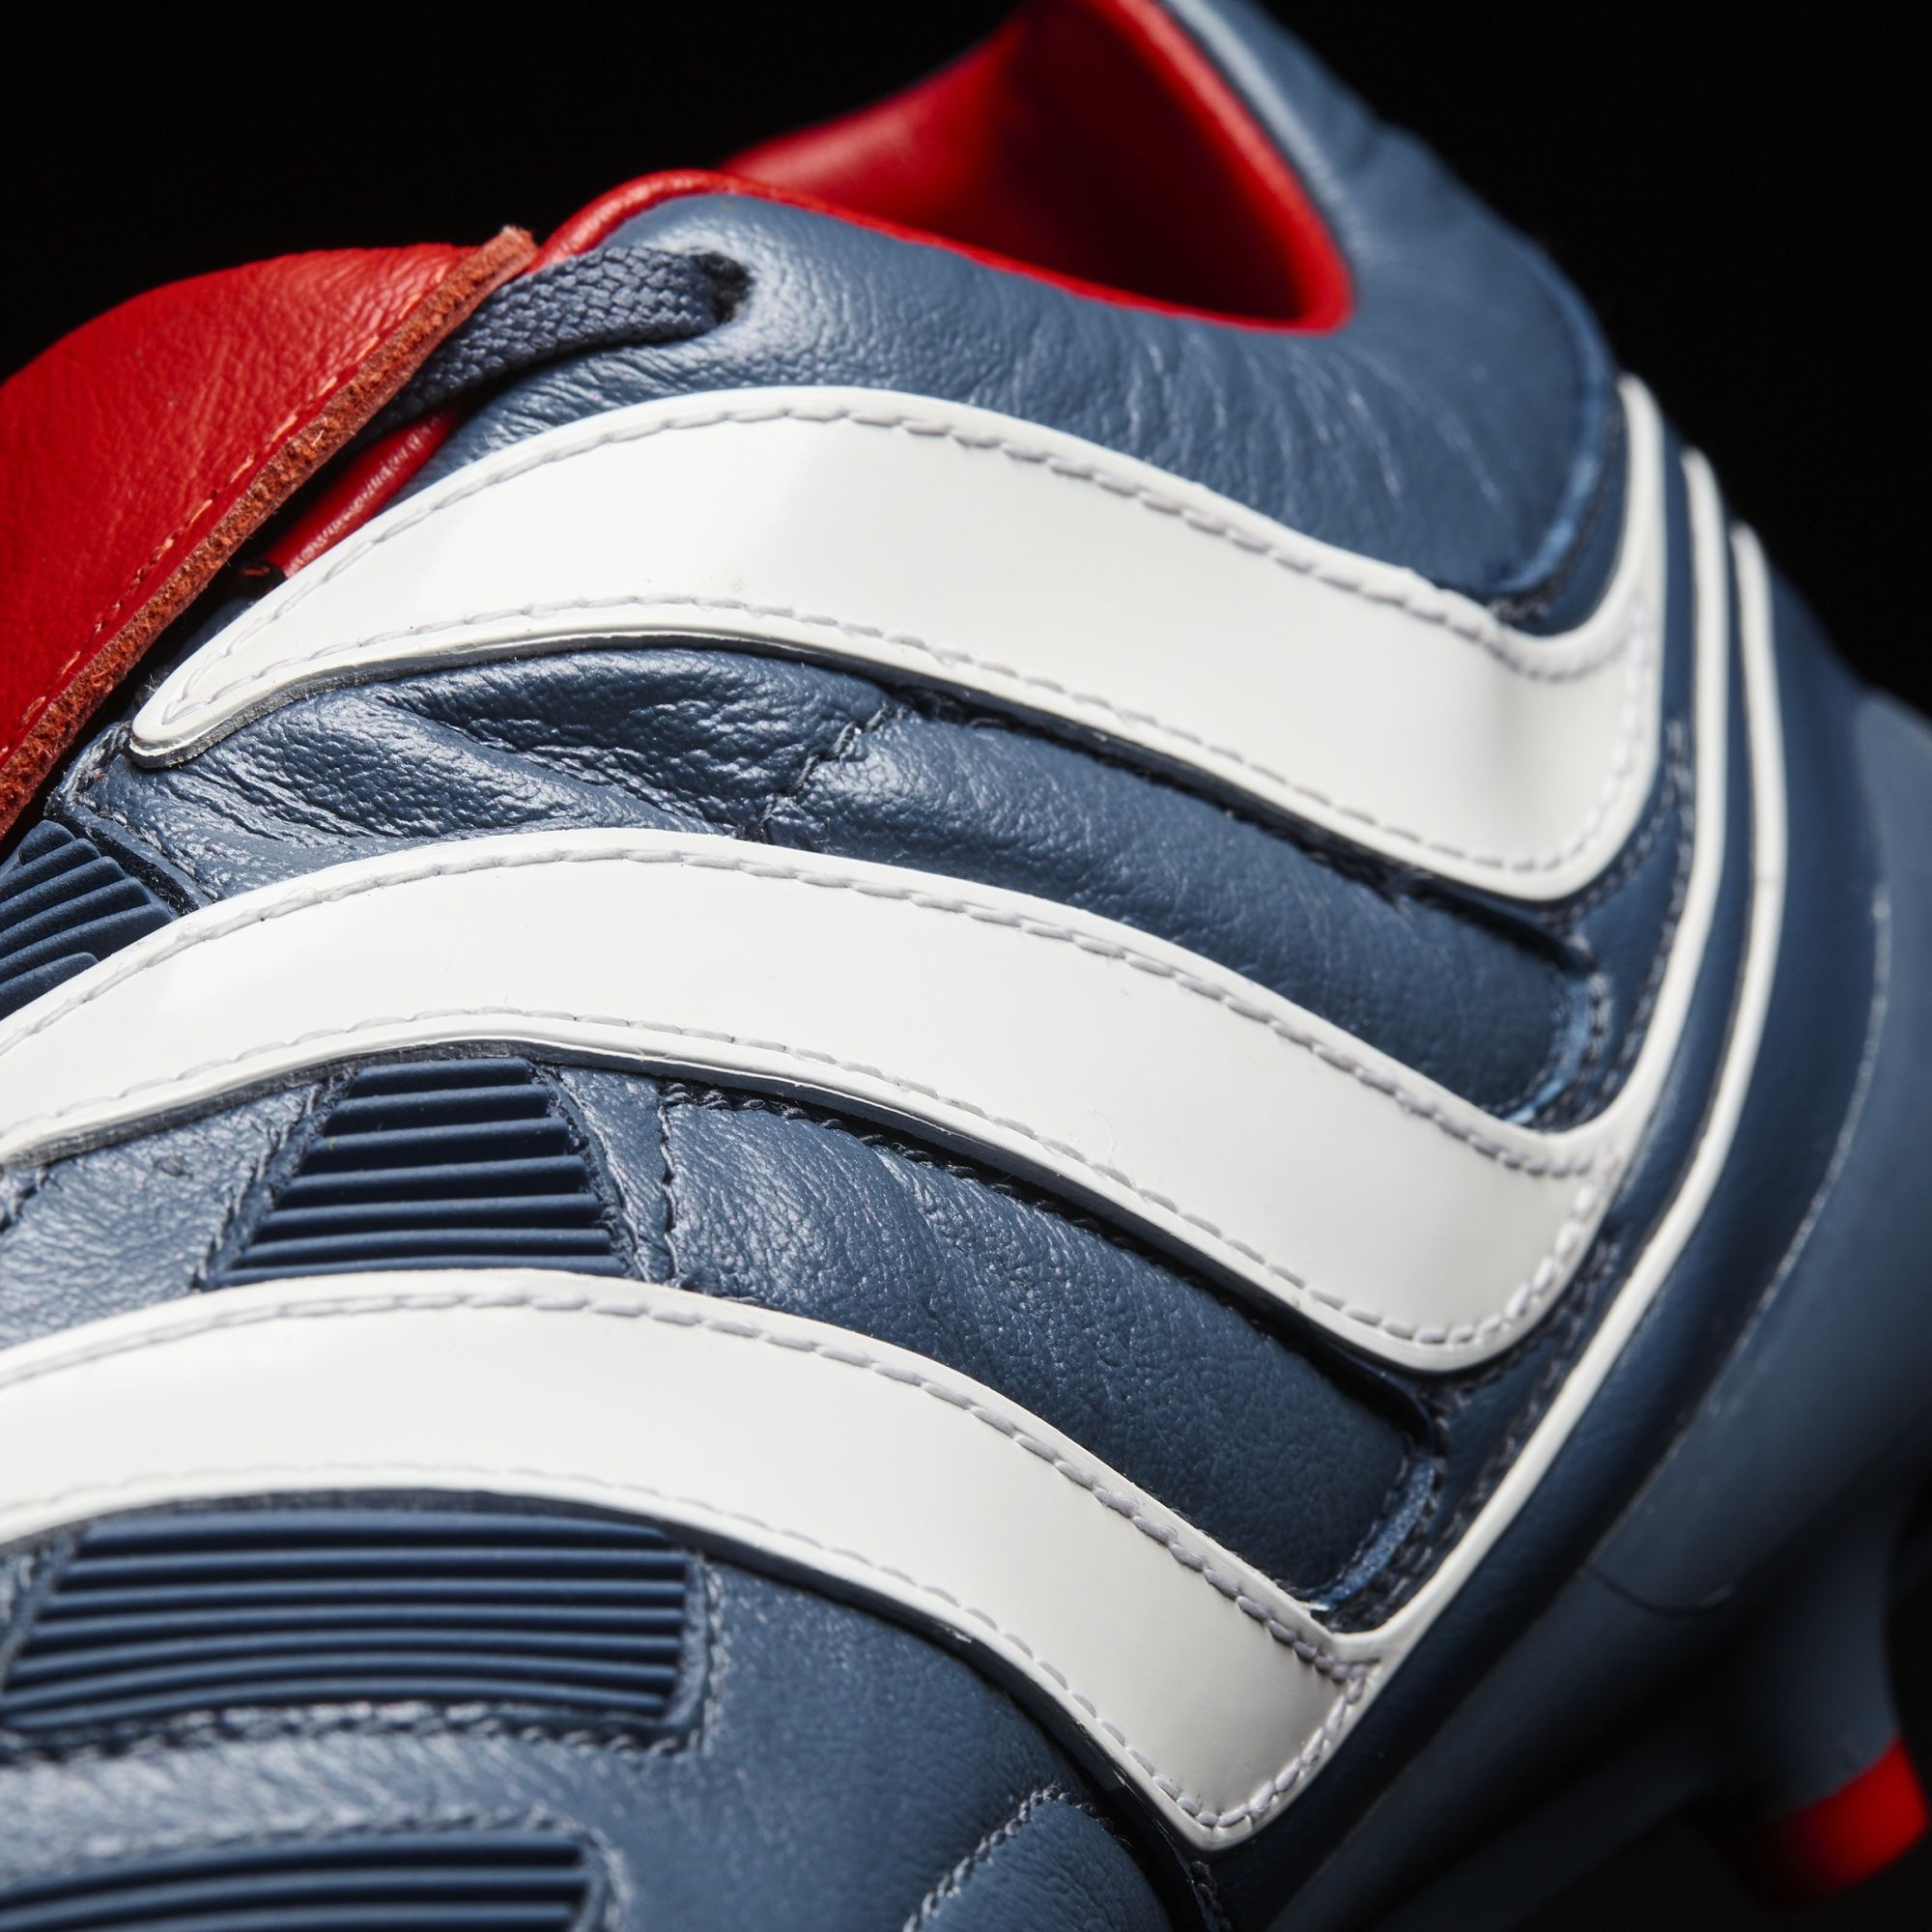 b47e47d5b87 50% off adidas predator precision ultra boost blue grey footwear white  collegiate red limited edition 2e9ac c3e63  reduced click to enlarge image  ...